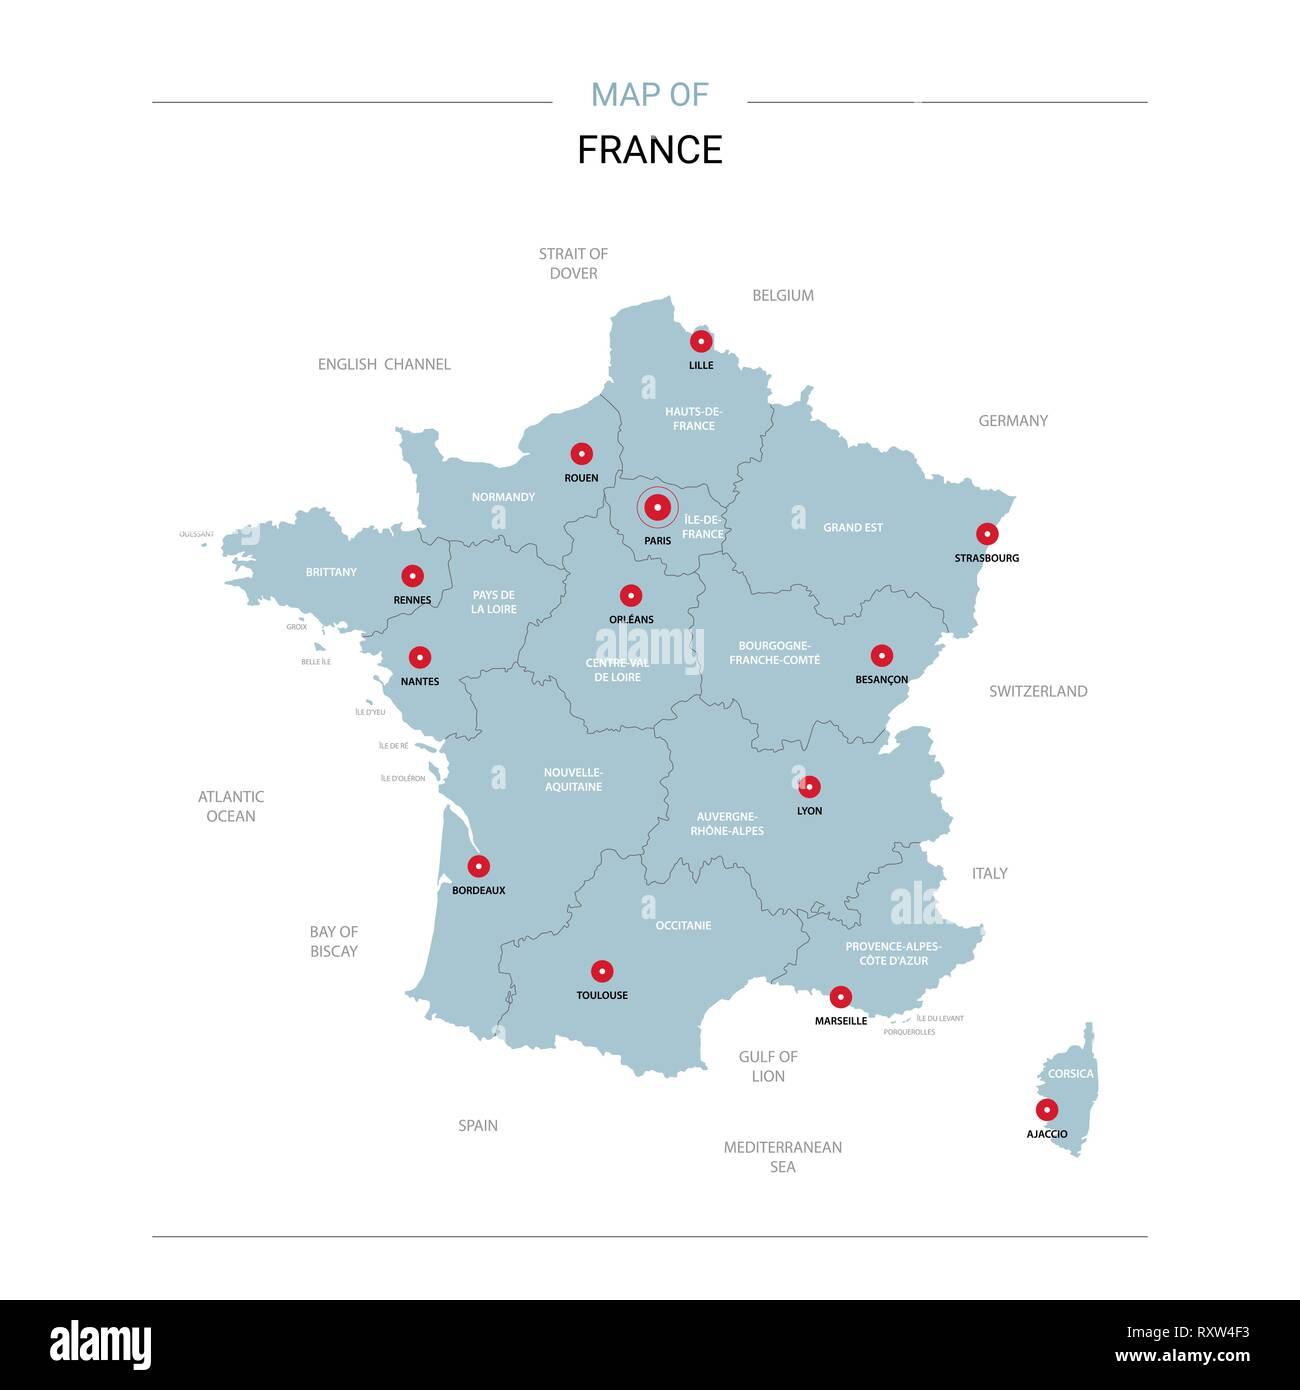 Map Of France Regions And Cities.France Vector Map Editable Template With Regions Cities Red Pins